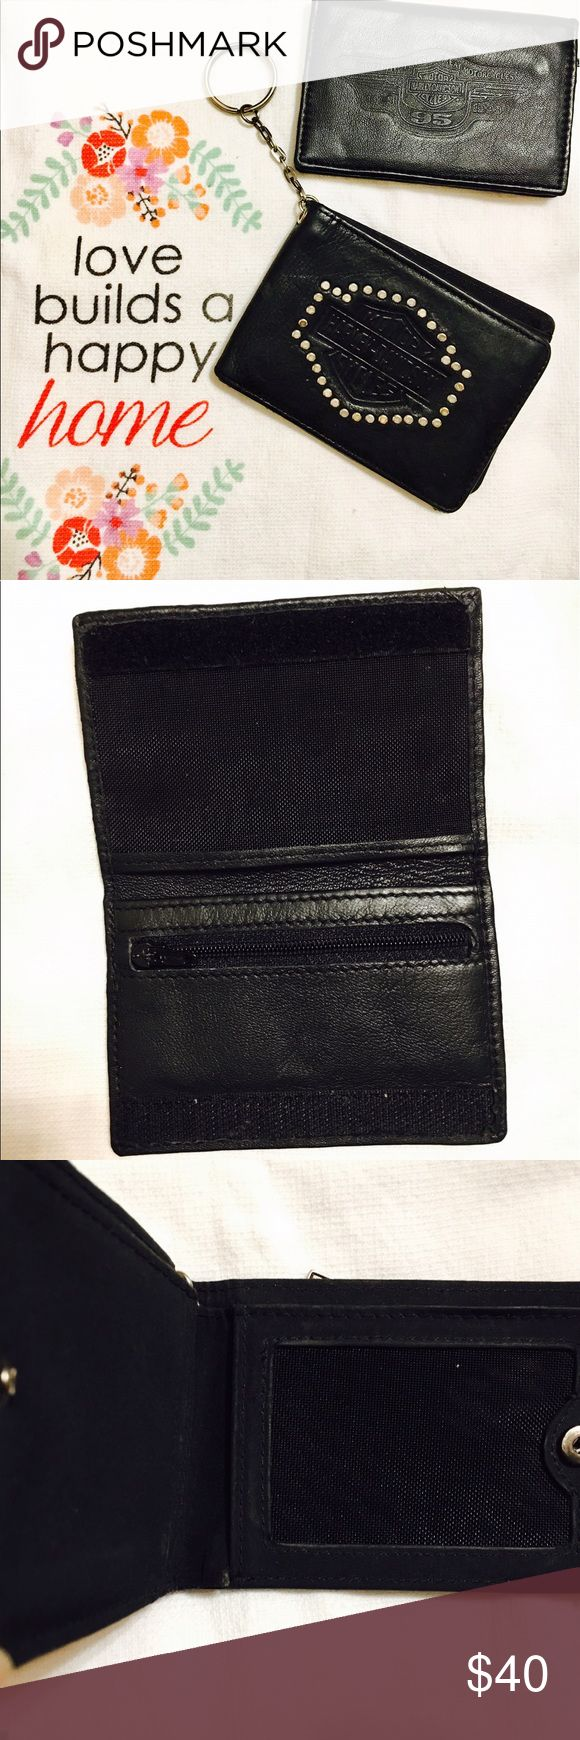 Harley-Davidson Wallets Vintage wallets, small in size but in very good condition Harley-Davidson Bags Wallets